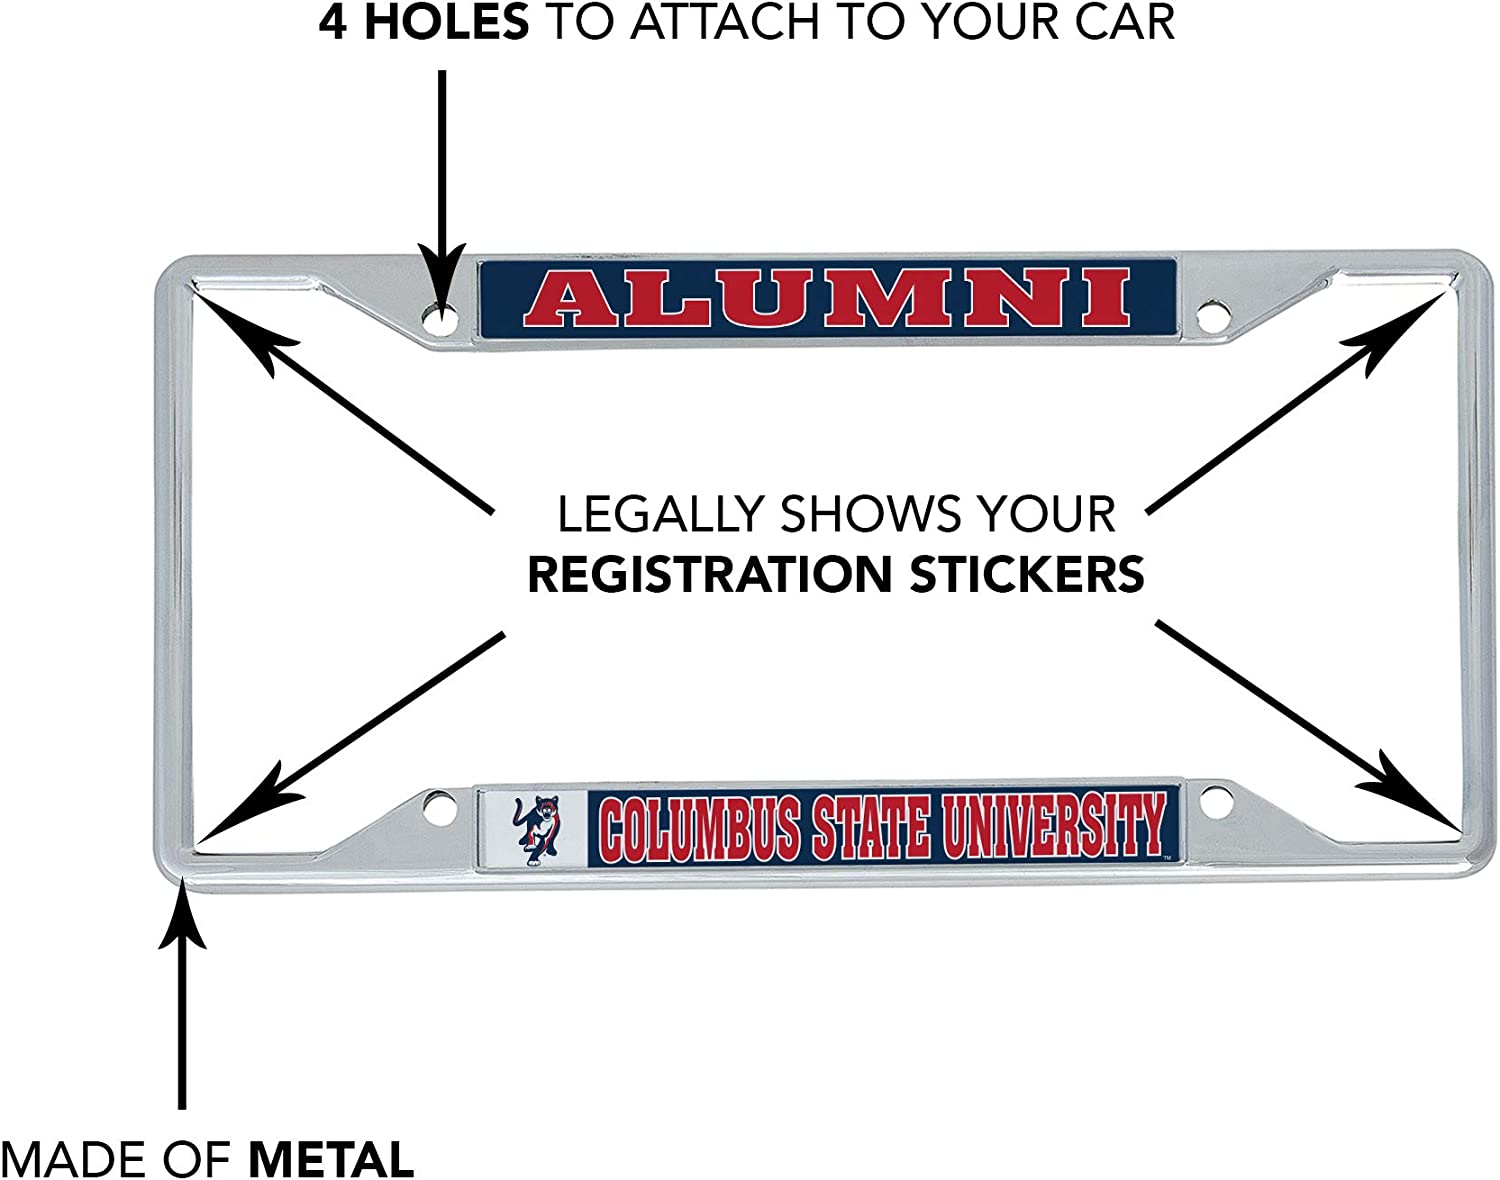 Alumni Desert Cactus Columbus State University Cougars NCAA Metal License Plate Frame for Front Back of Car Officially Licensed